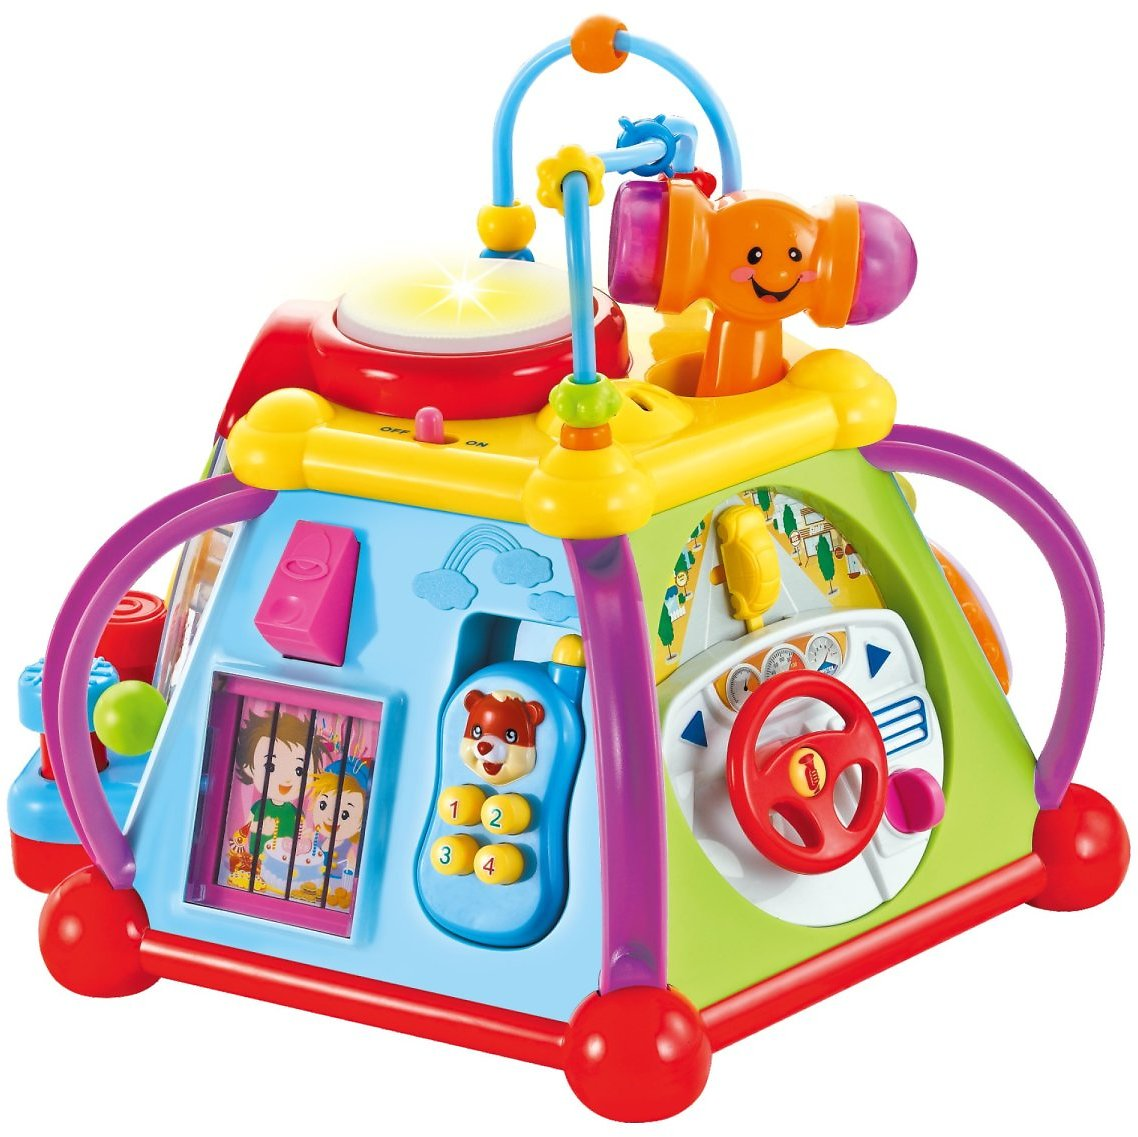 Musical Activity Cube Play Center Educational Learning Baby Toys for Toddlers Kids Girls Boys -15 Different Activities and 6 Sid